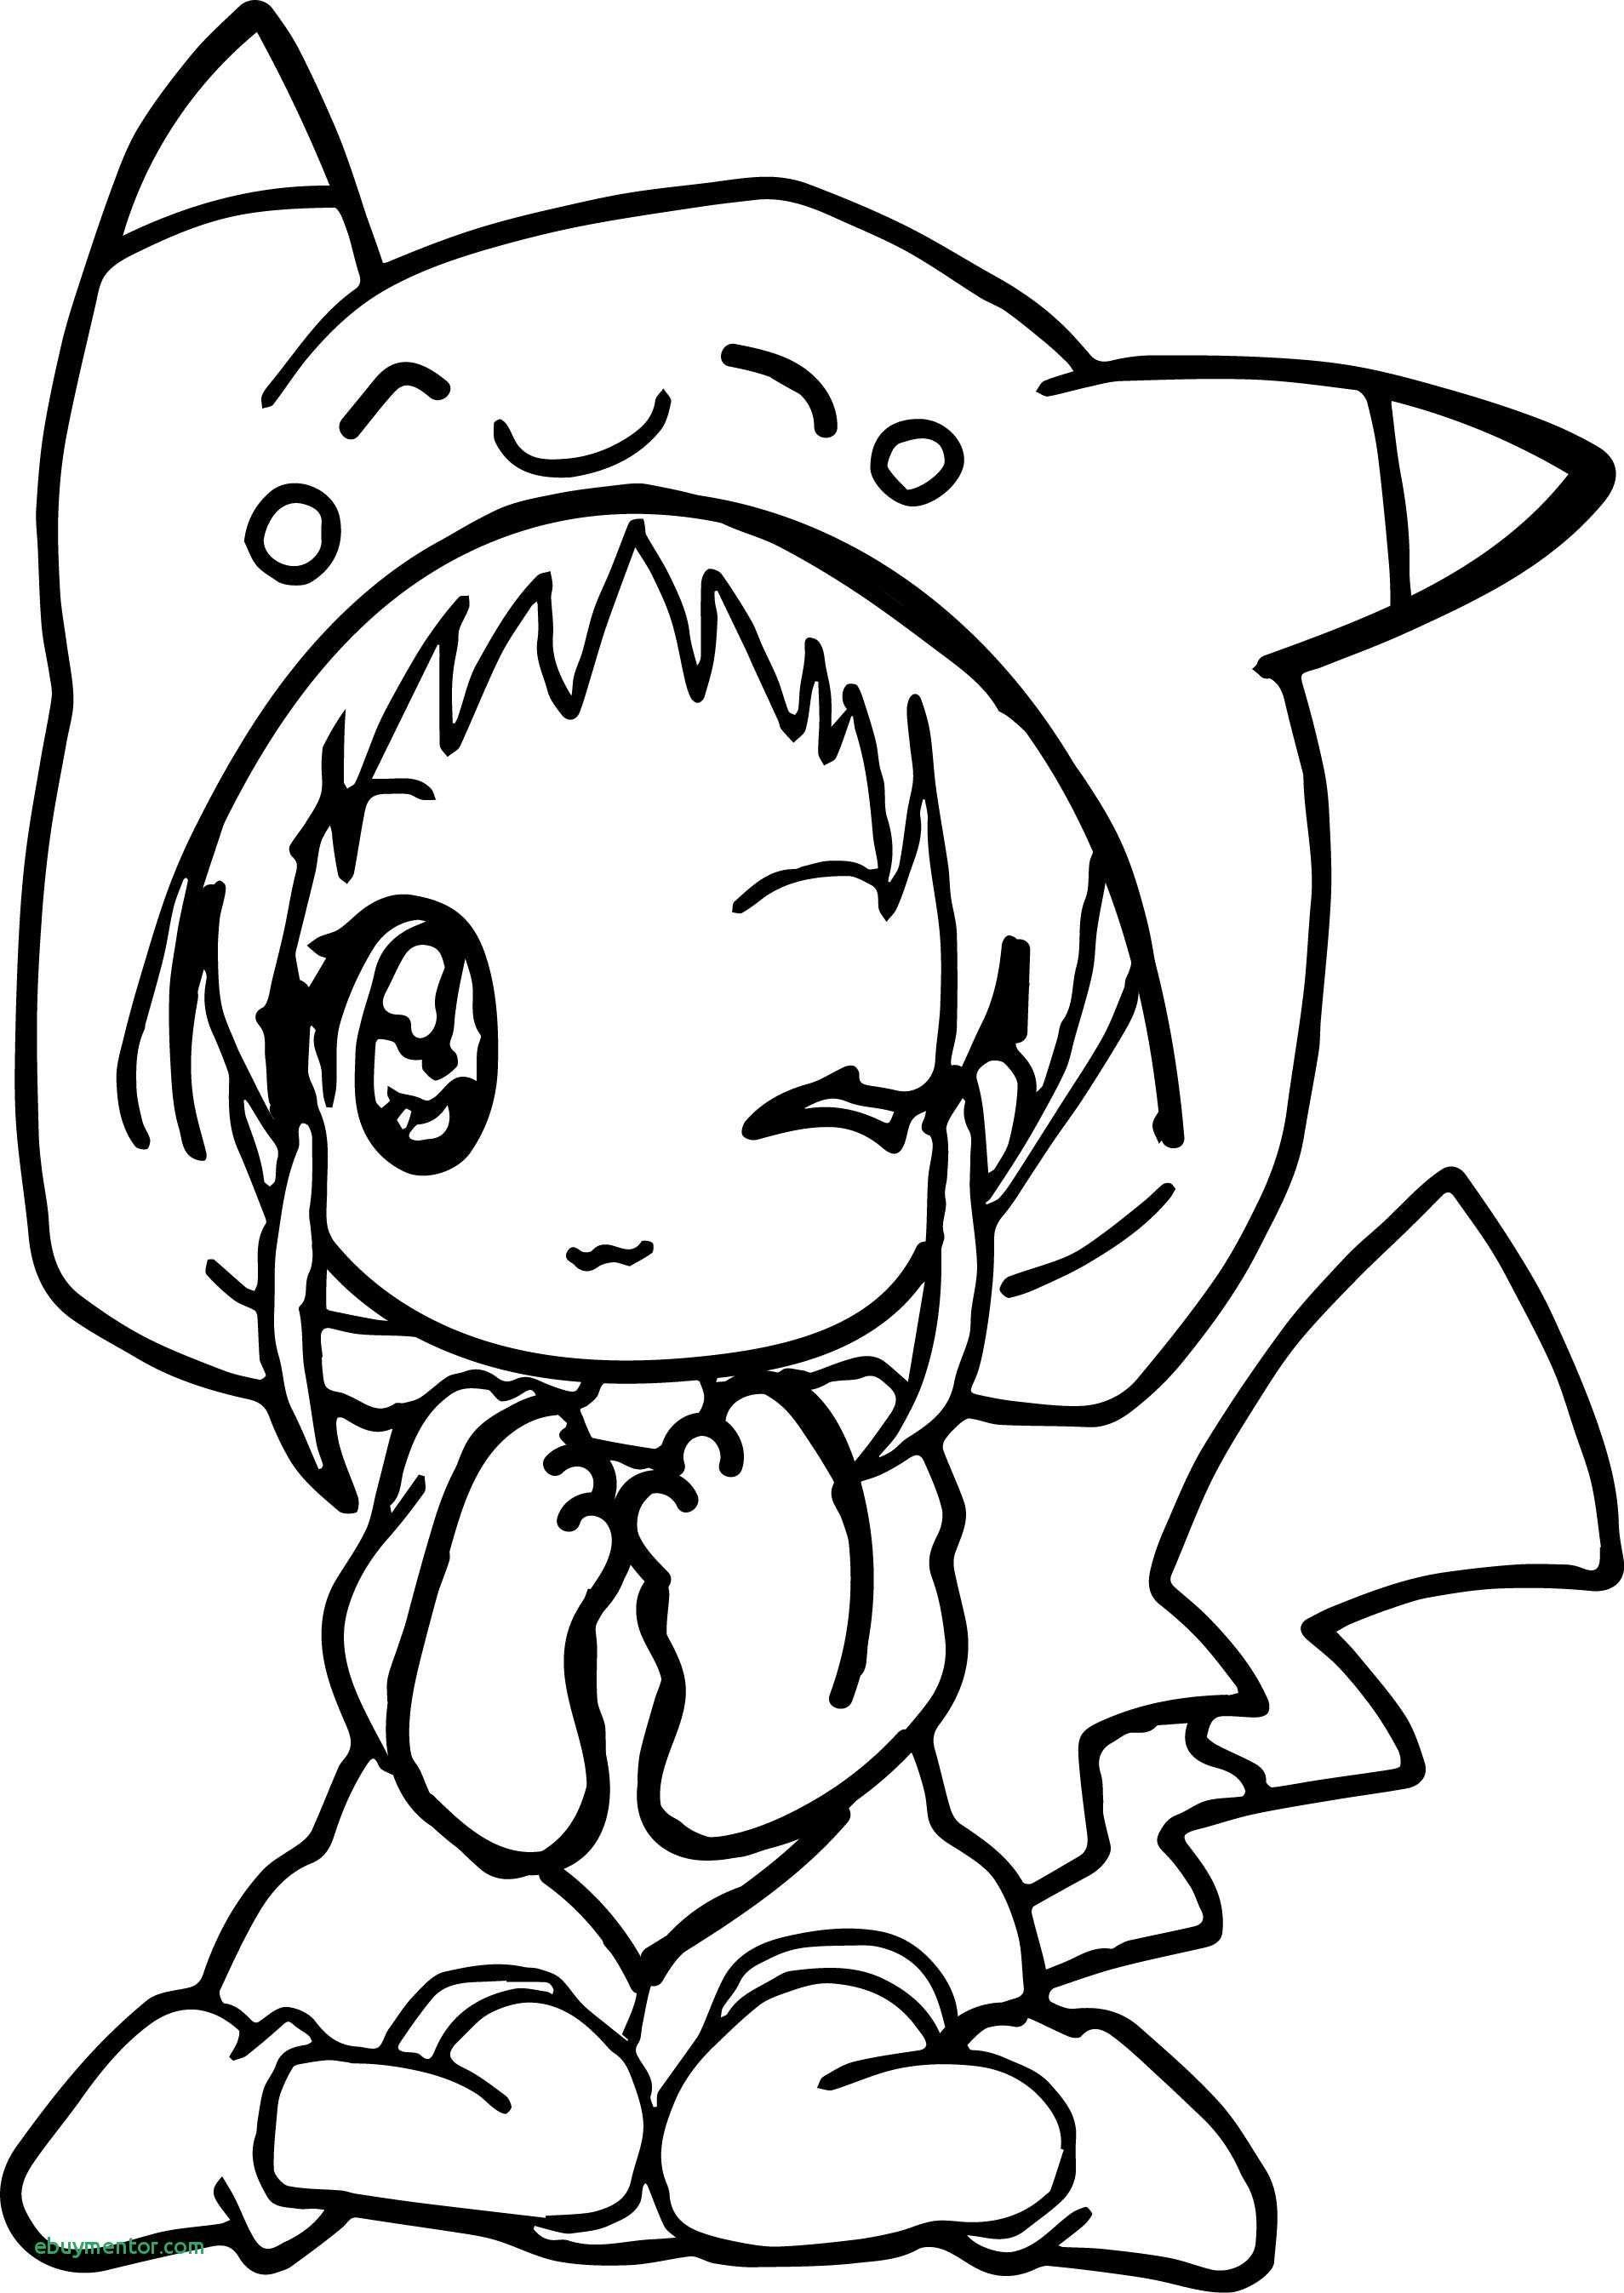 Chibi Pikachu Coloring Page Through The Thousands Of Images On Line Regarding Chibi Pikac Unicorn Coloring Pages Pikachu Coloring Page Pokemon Coloring Pages